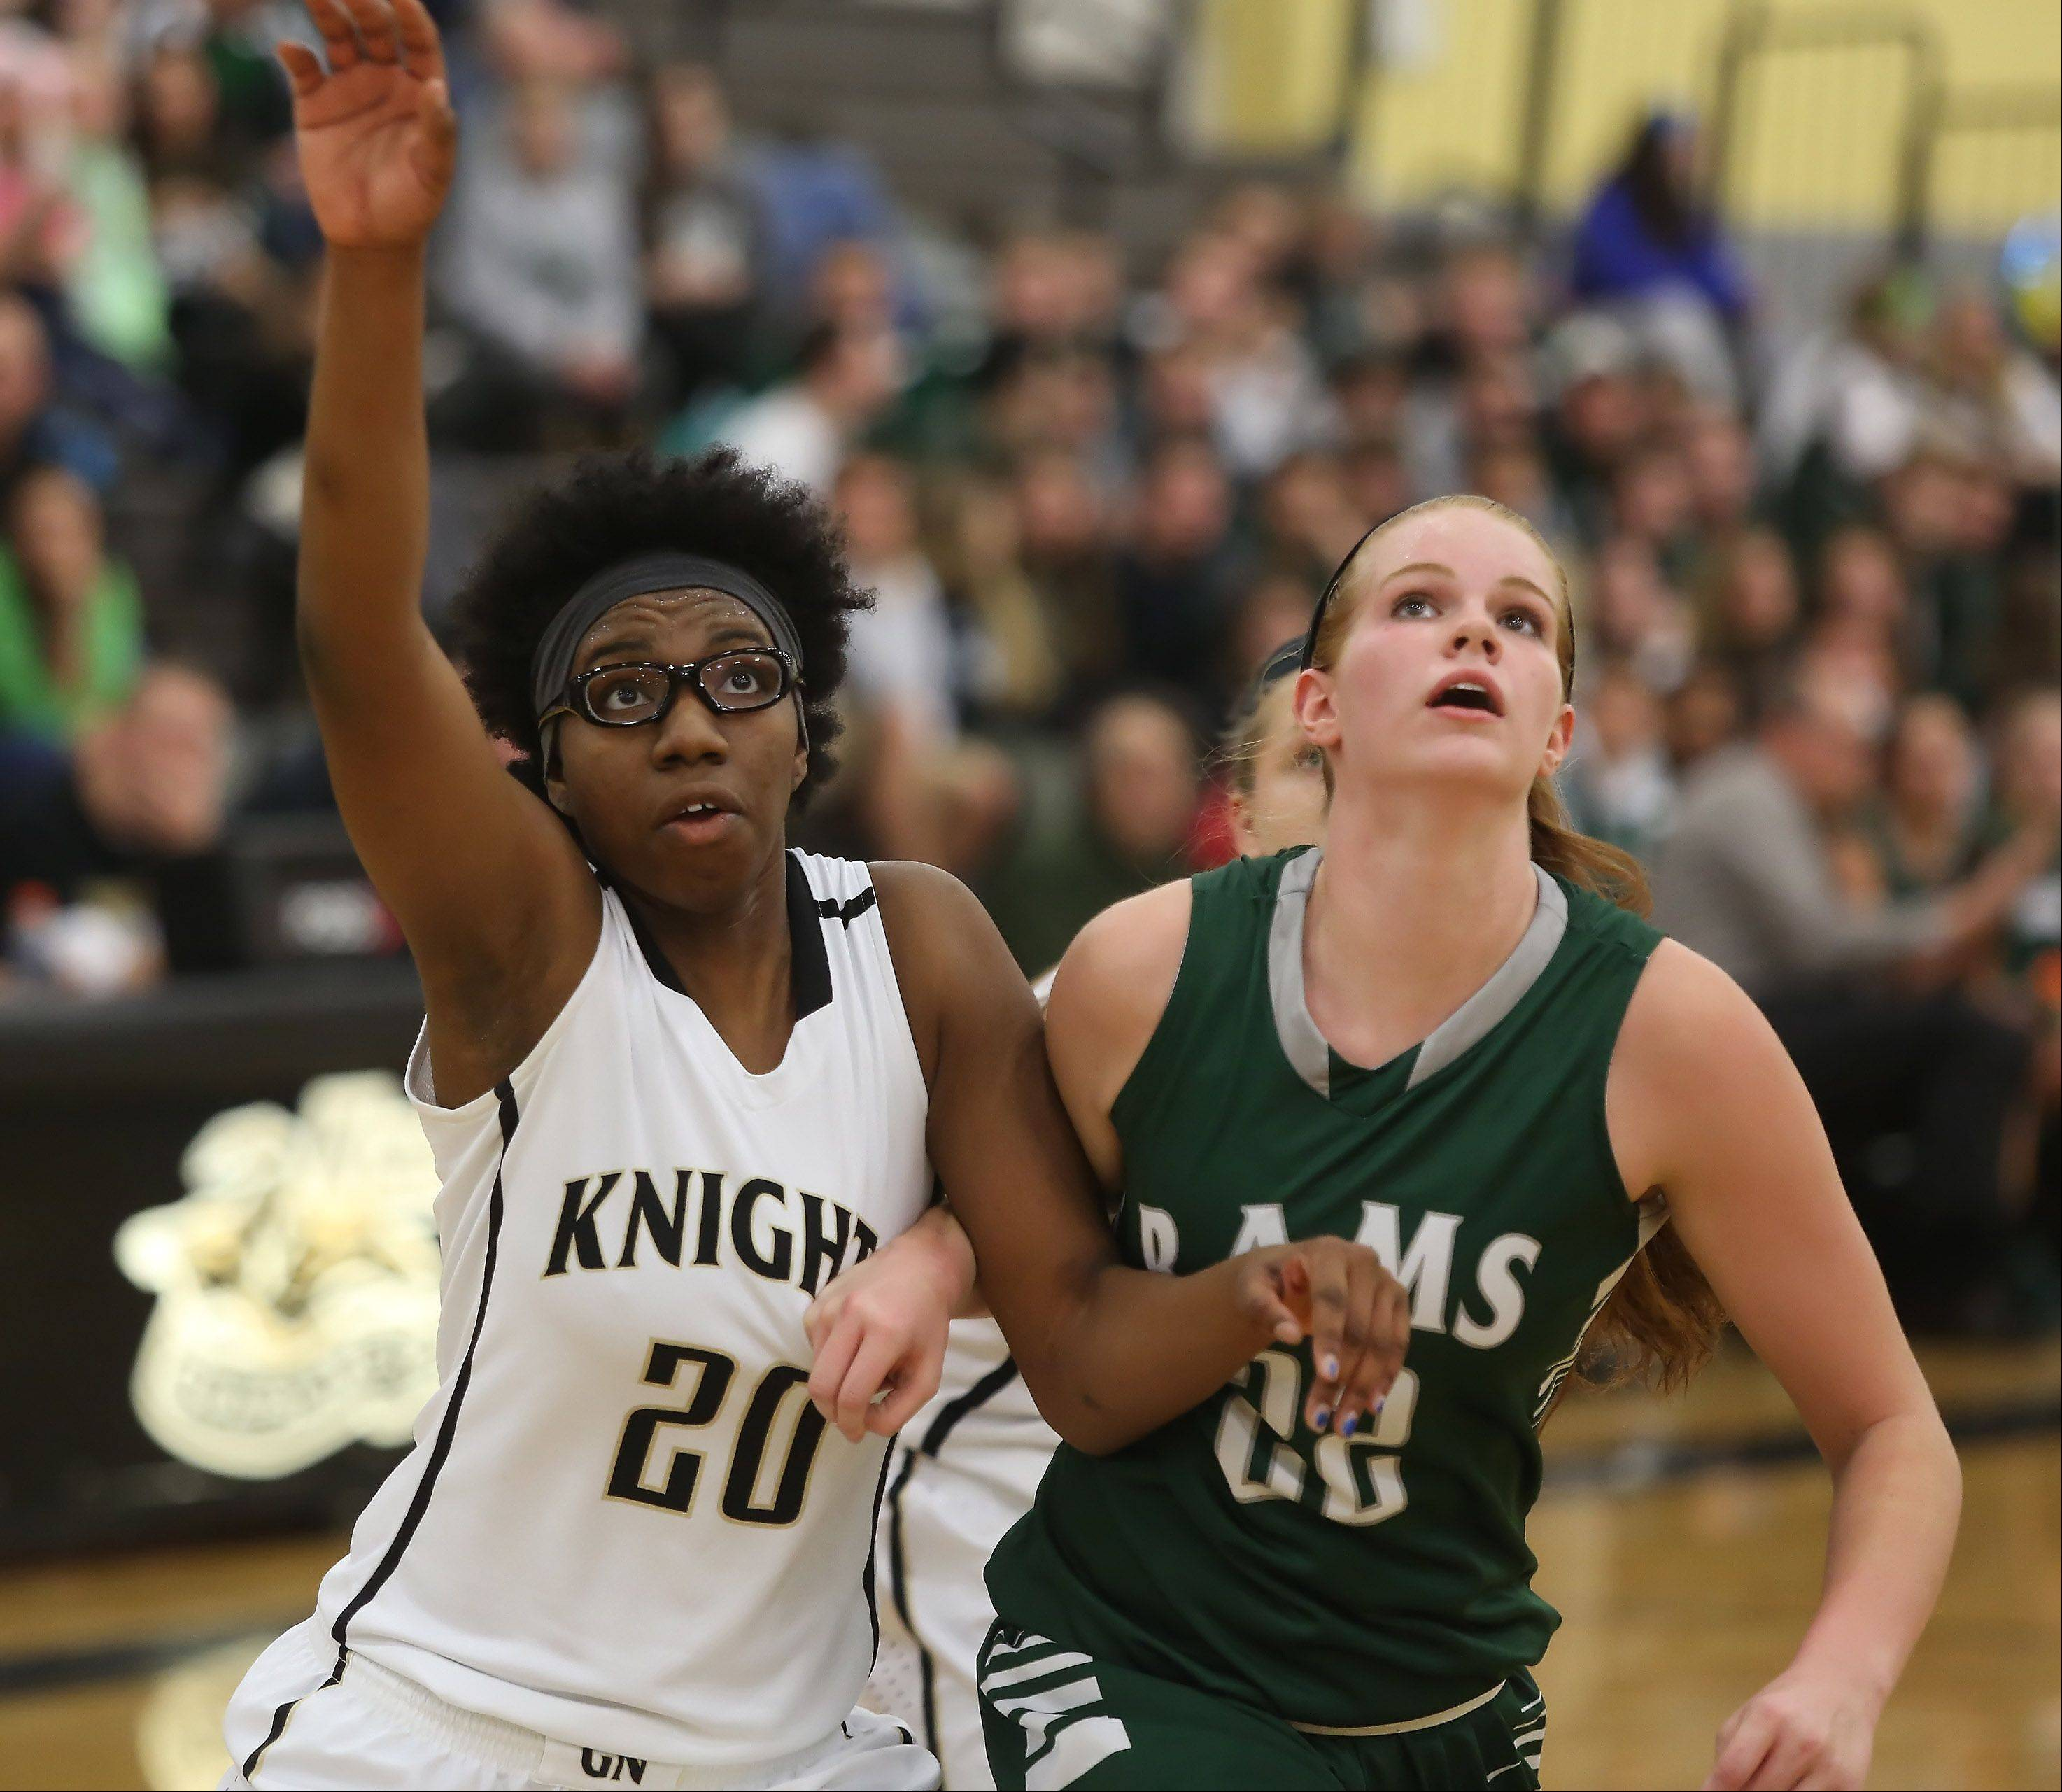 Images: Grayslake North vs. Grayslake Central girls basketball